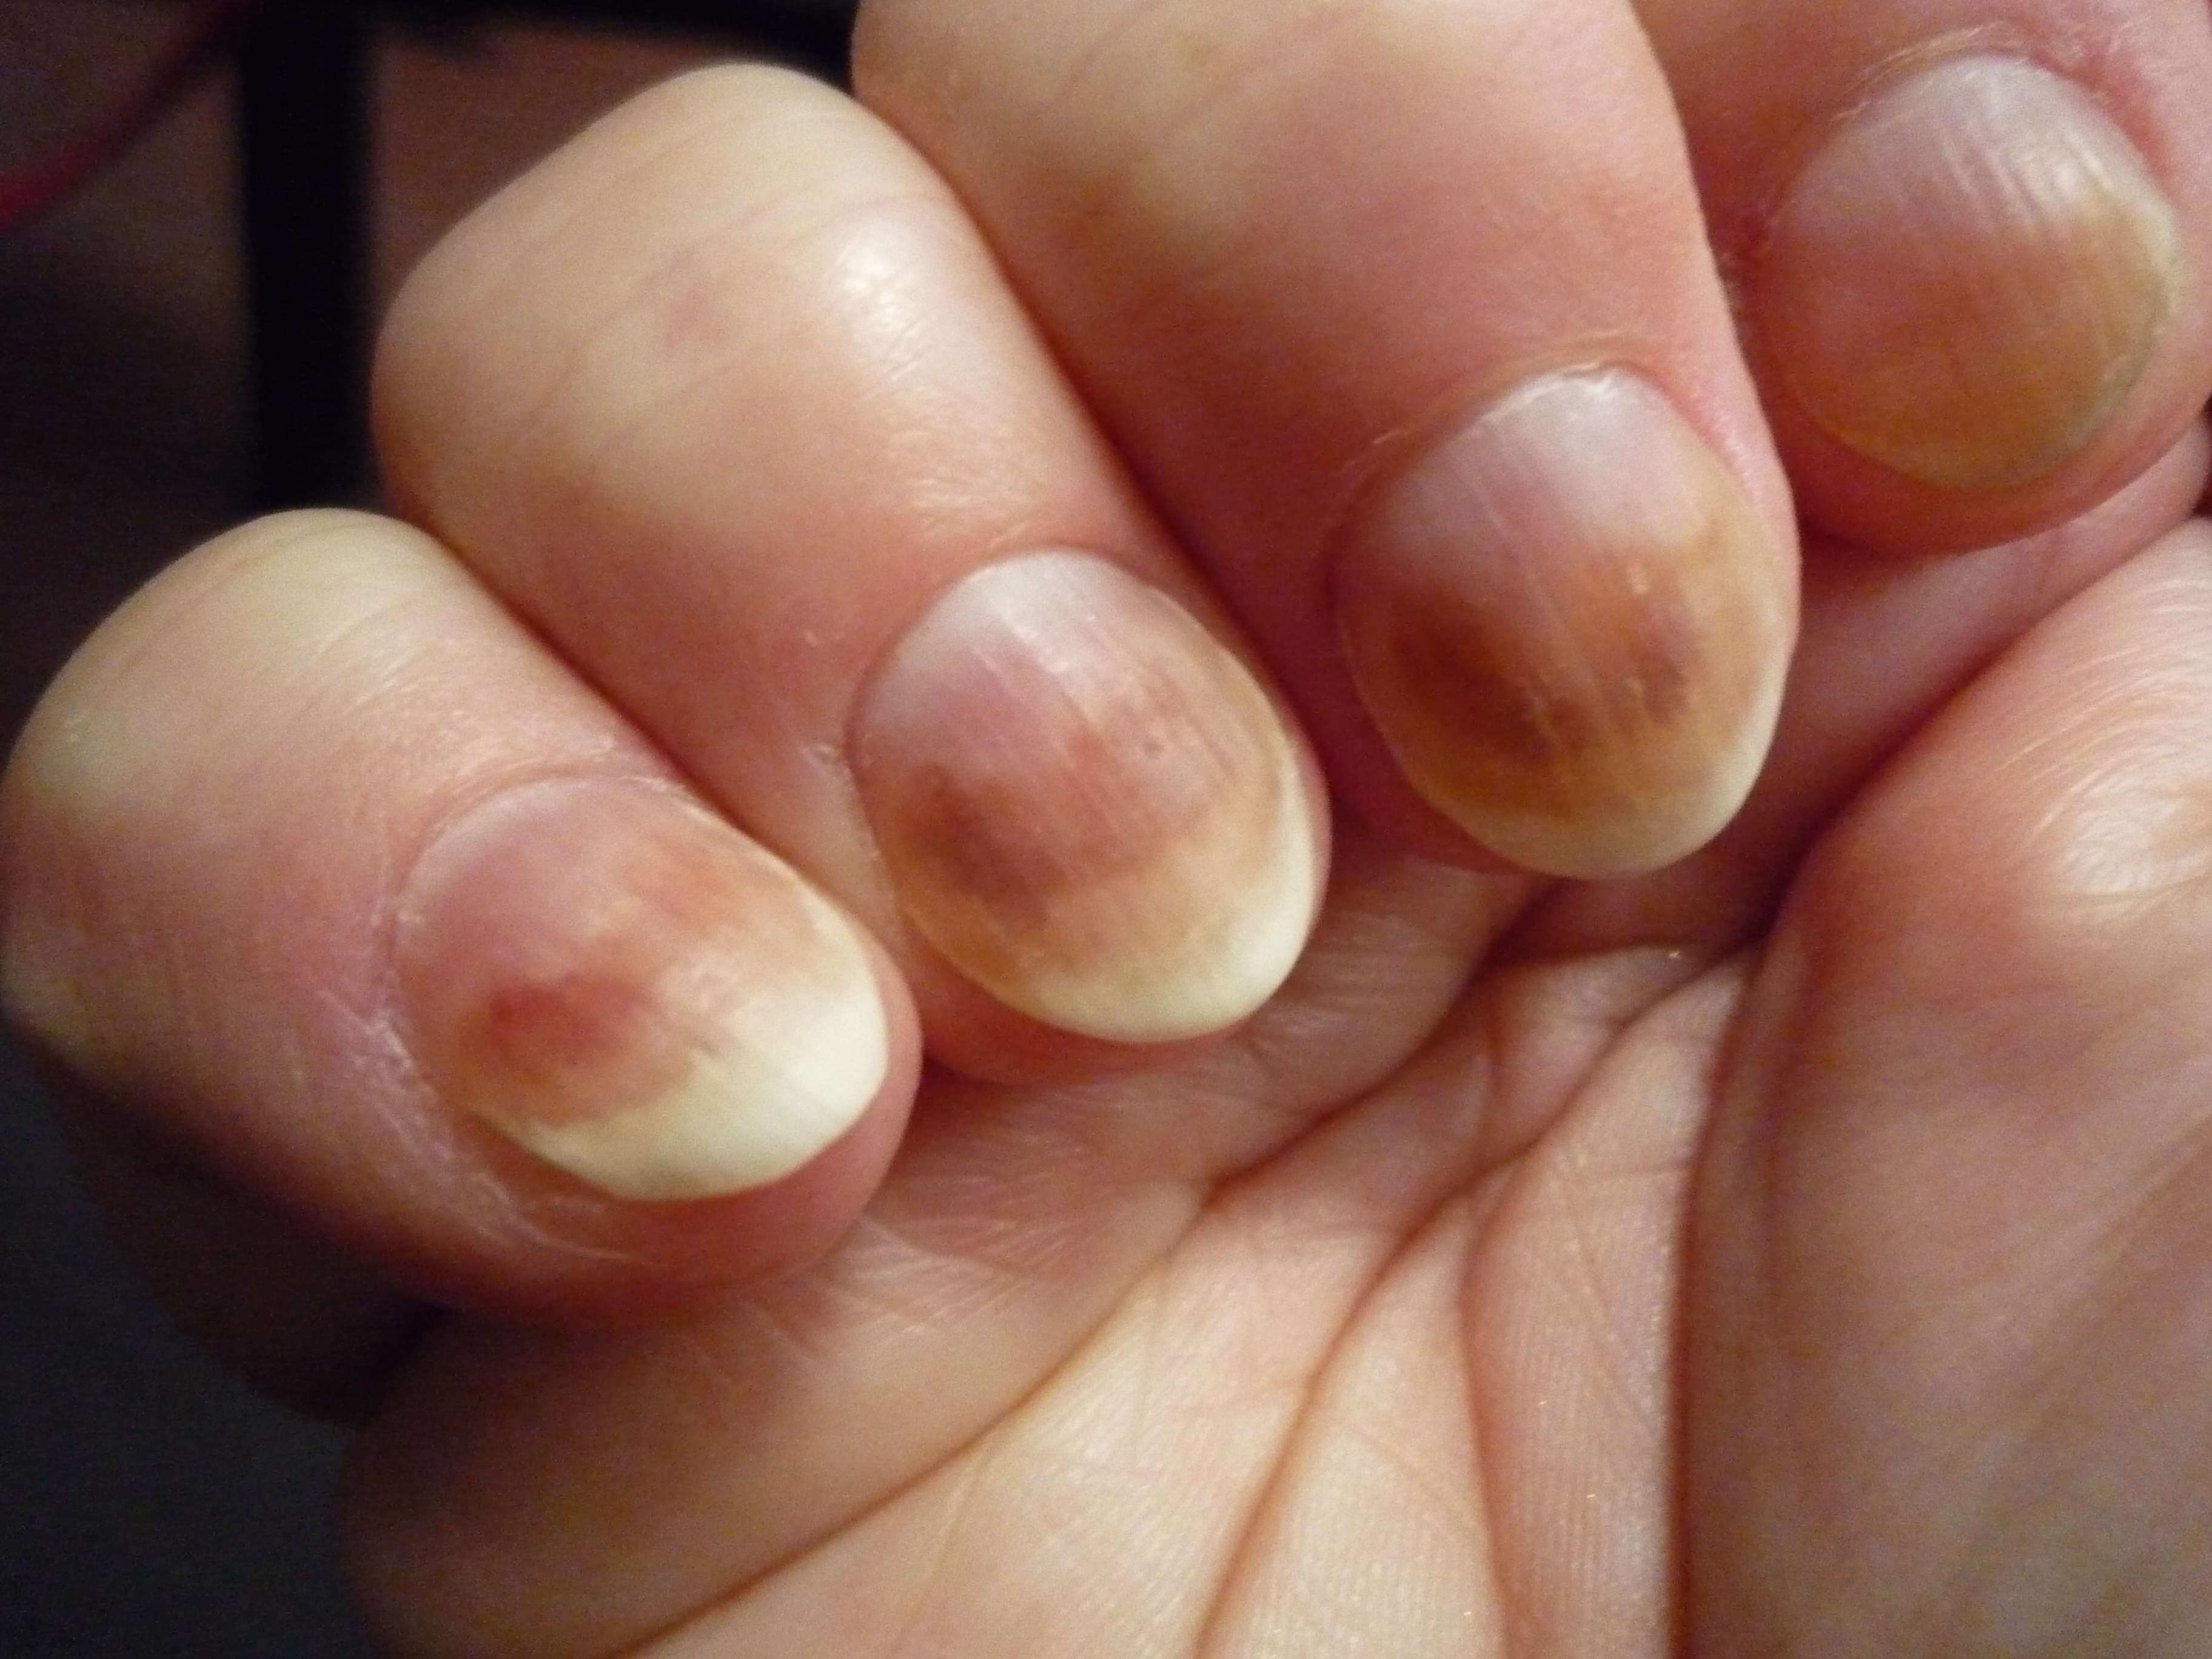 Could your nail varnish cause you cancer